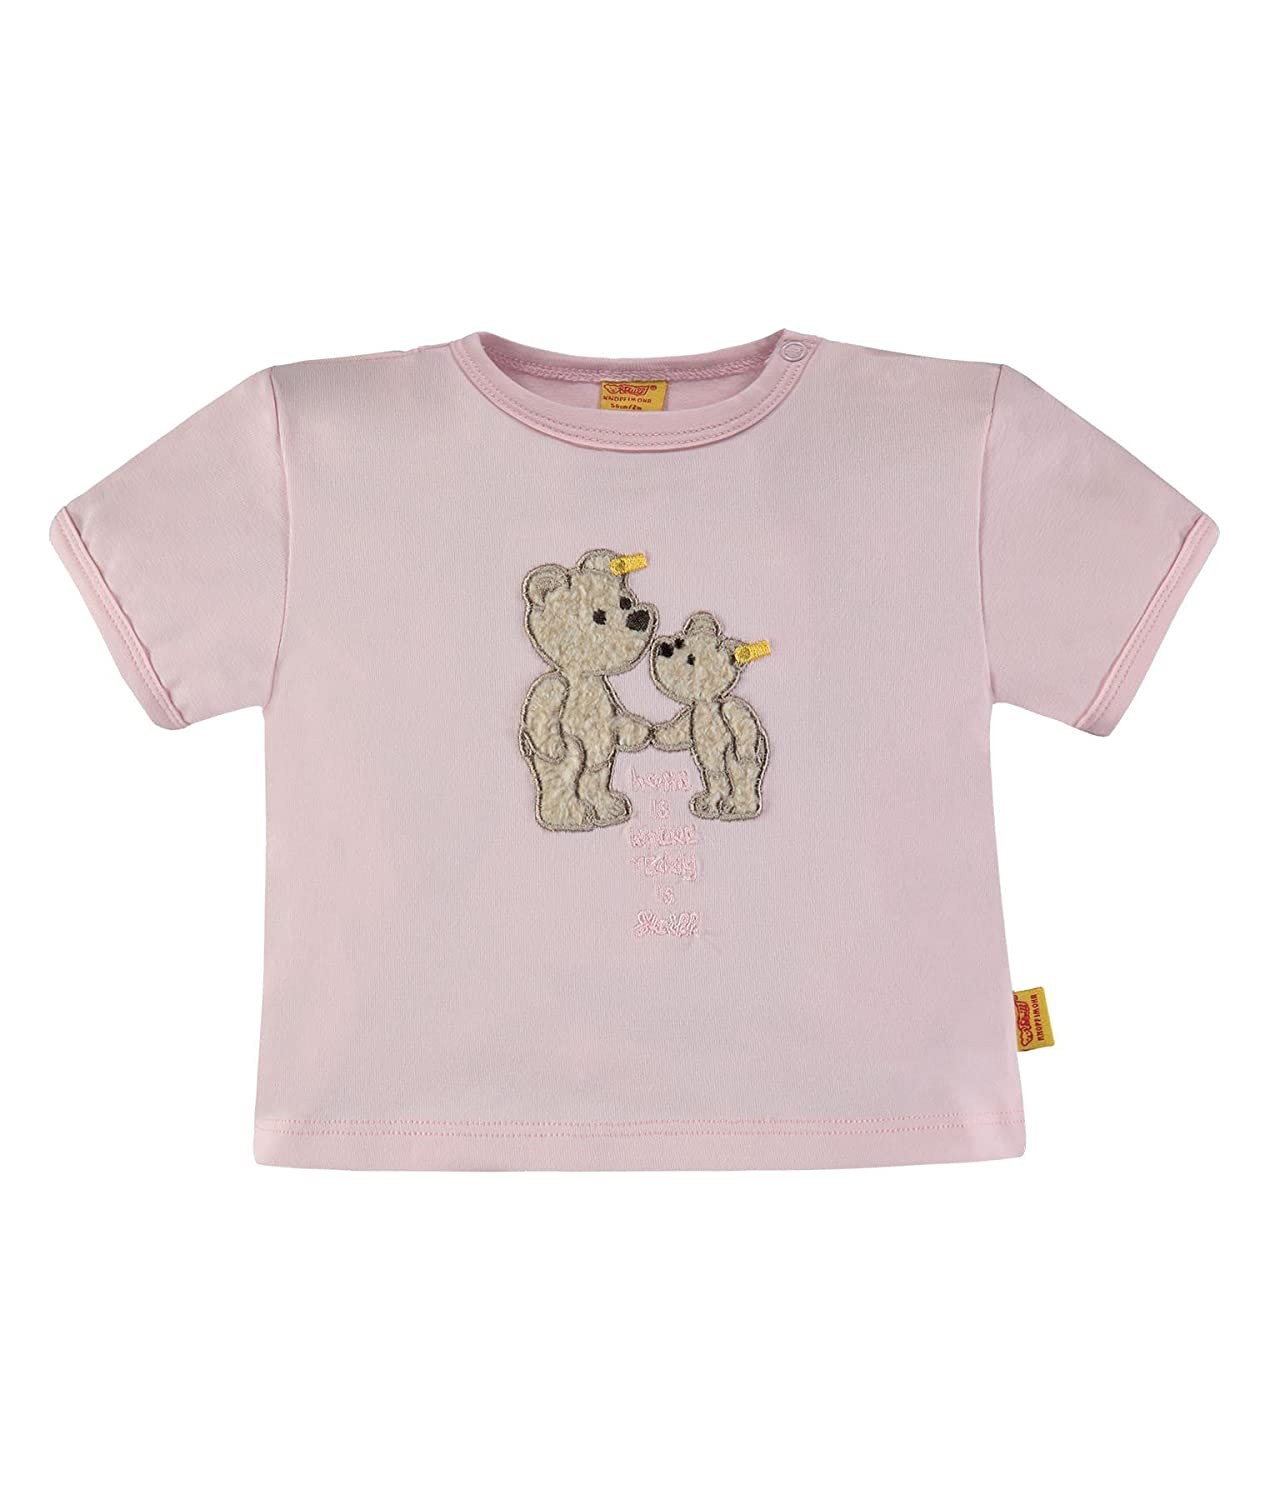 Steiff Unisex T-Shirt Steiff Collection 6836701